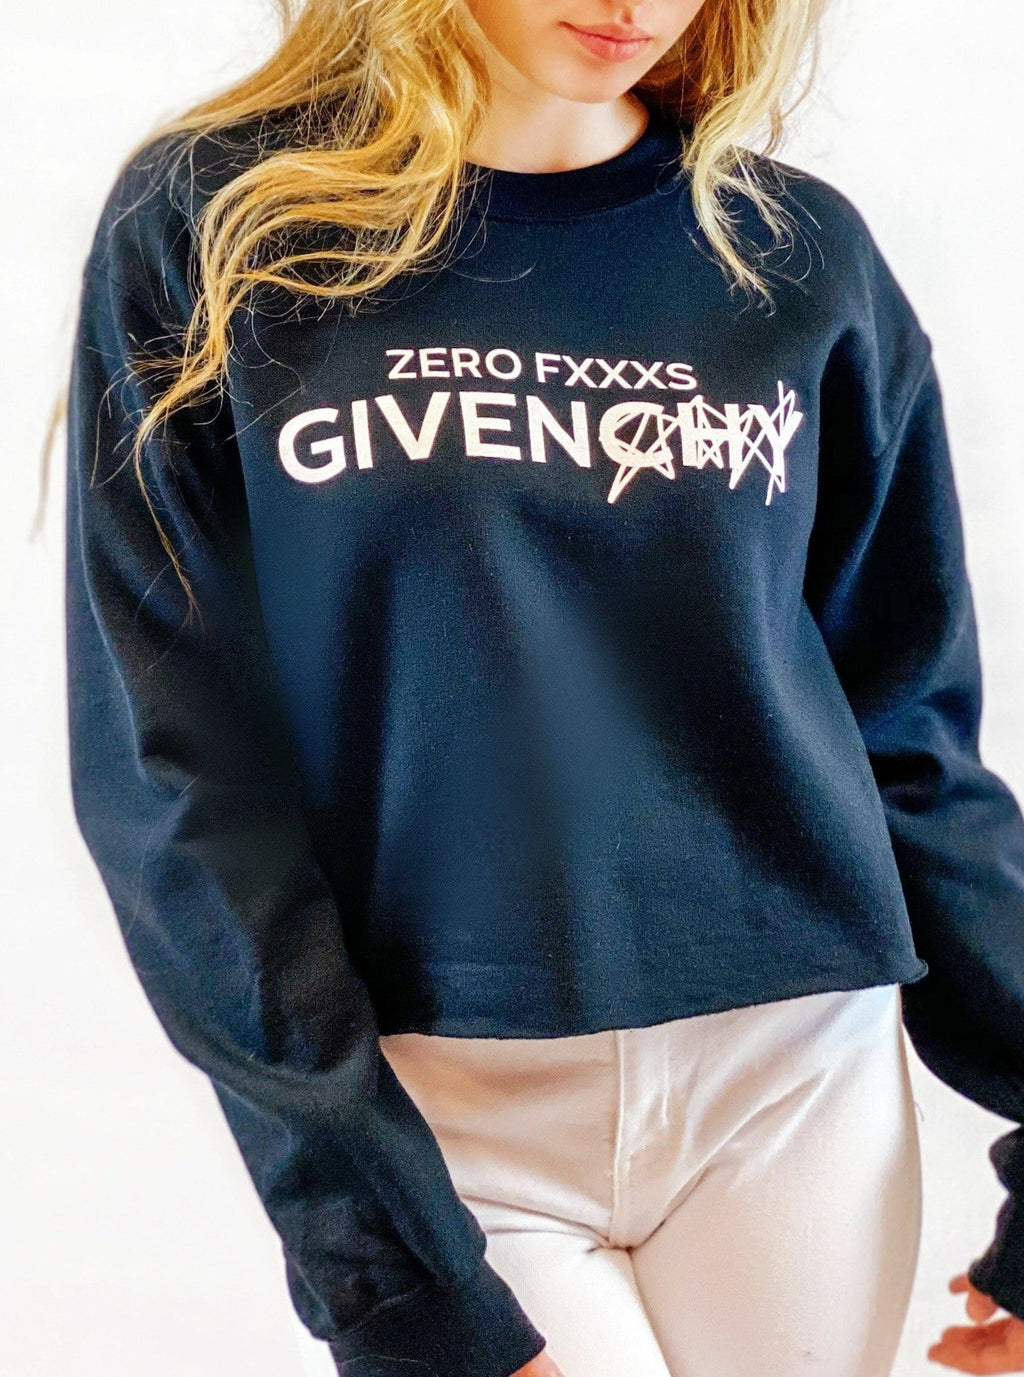 Zero F***s Given Crop Sweatshirt - bigcityboutique